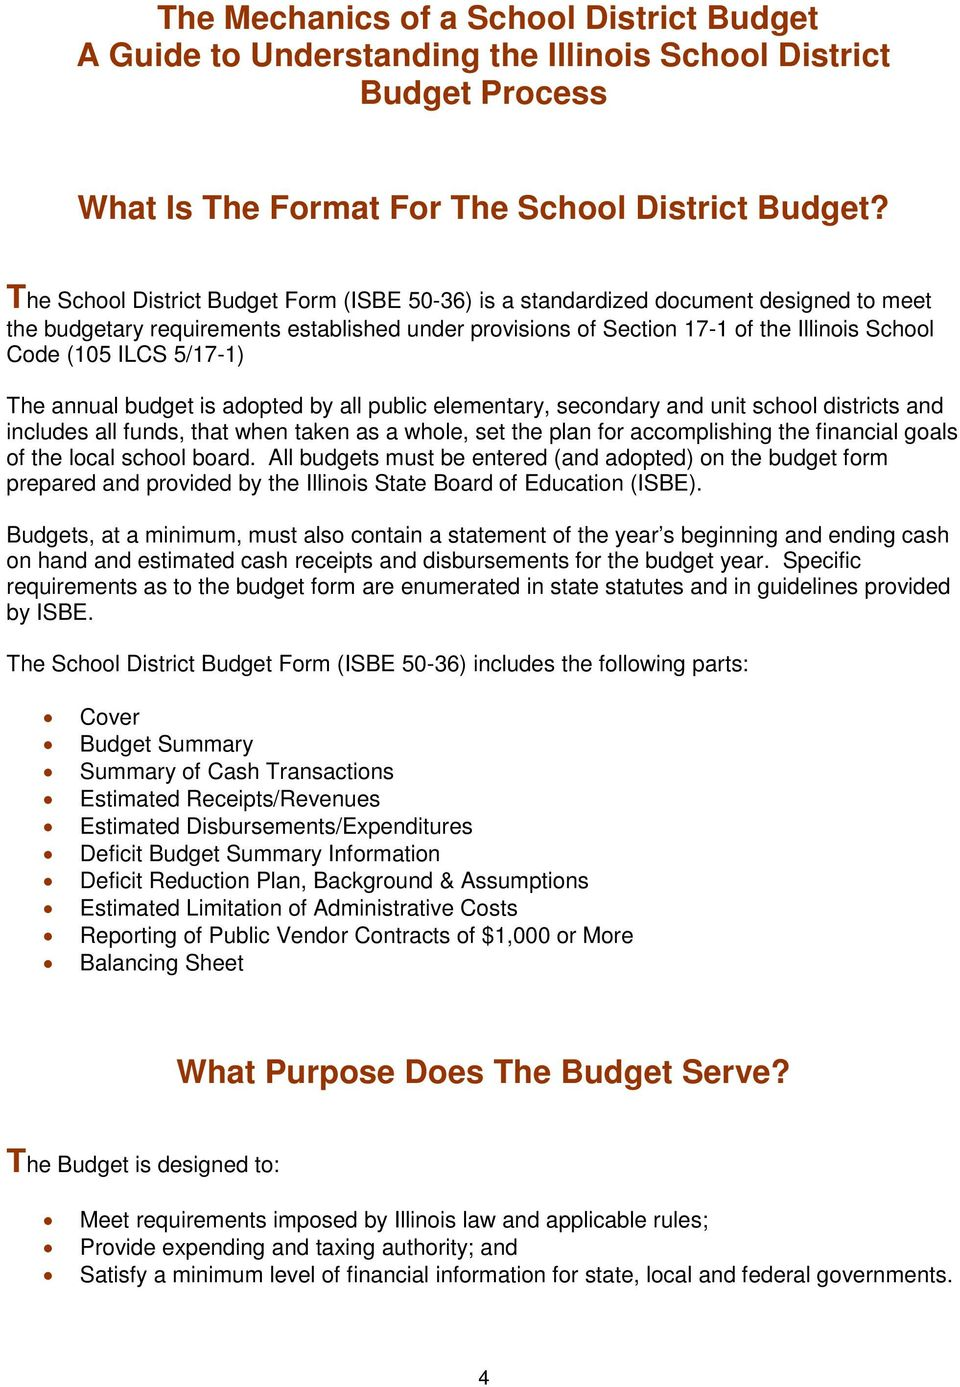 5/17-1) The annual budget is adopted by all public elementary, secondary and unit school districts and includes all funds, that when taken as a whole, set the plan for accomplishing the financial